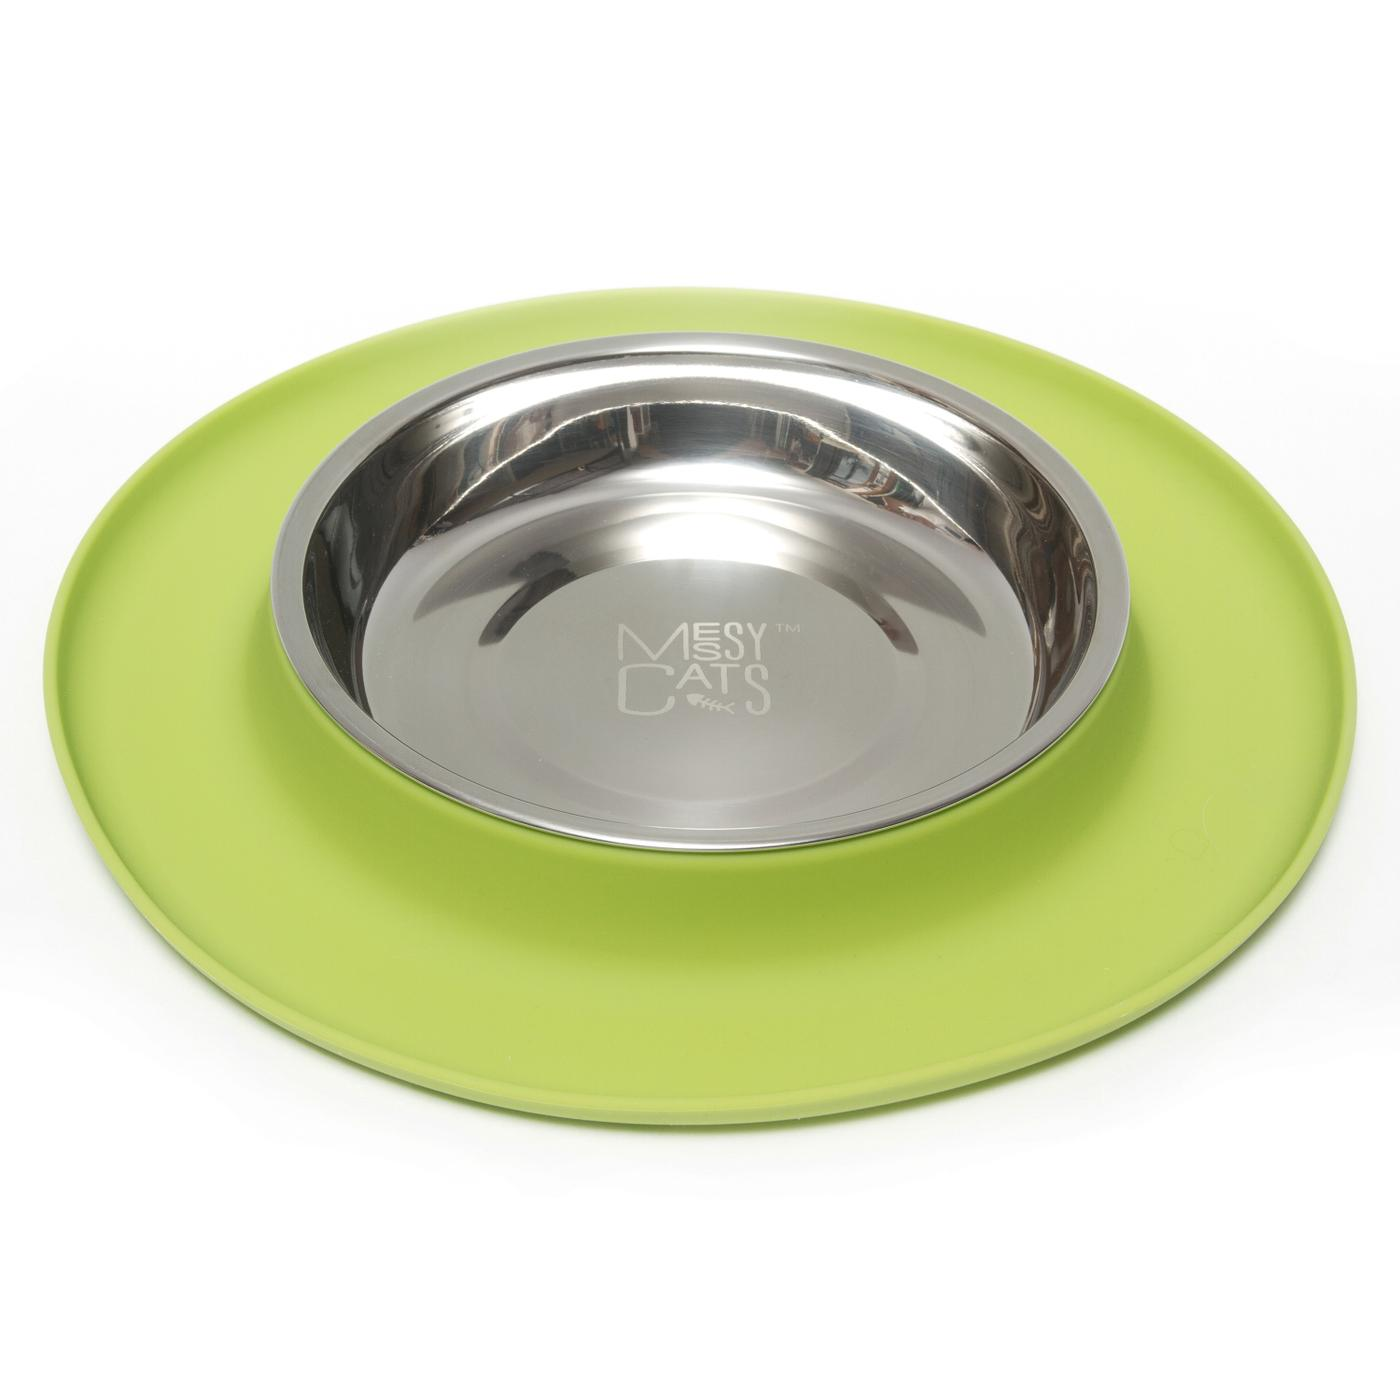 Messy Cats Silicone Feeder, Medium, Green